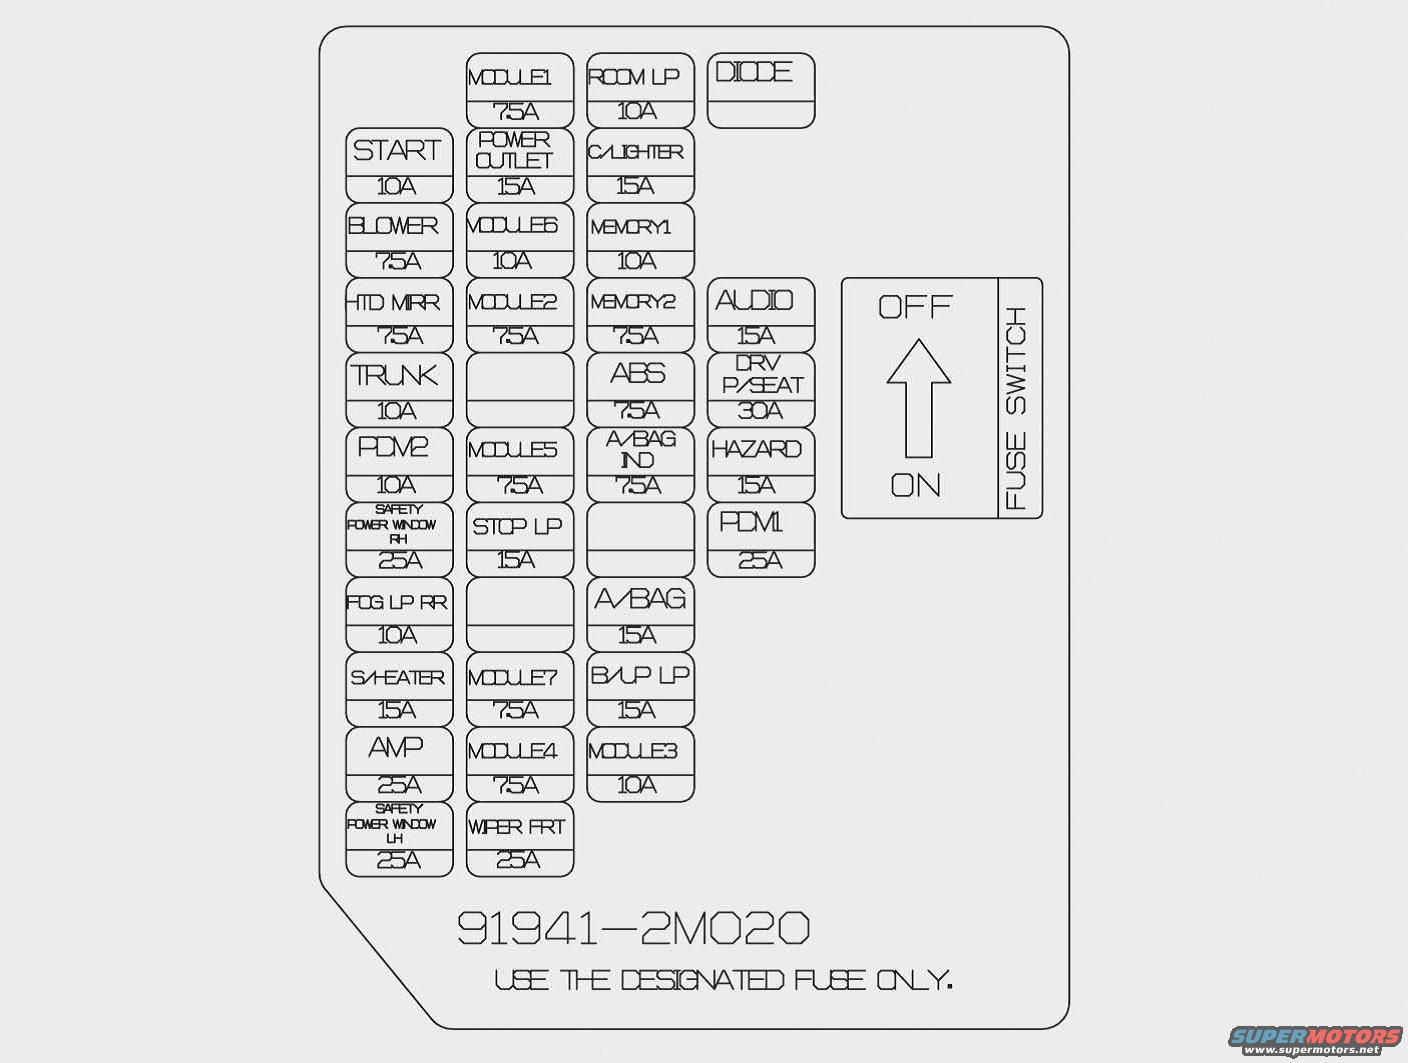 hyundai azera fuse box diagram 2008 hyundai azera fuse box diagram - auto electrical ... 2003 hyundai sonata fuse box diagram #14